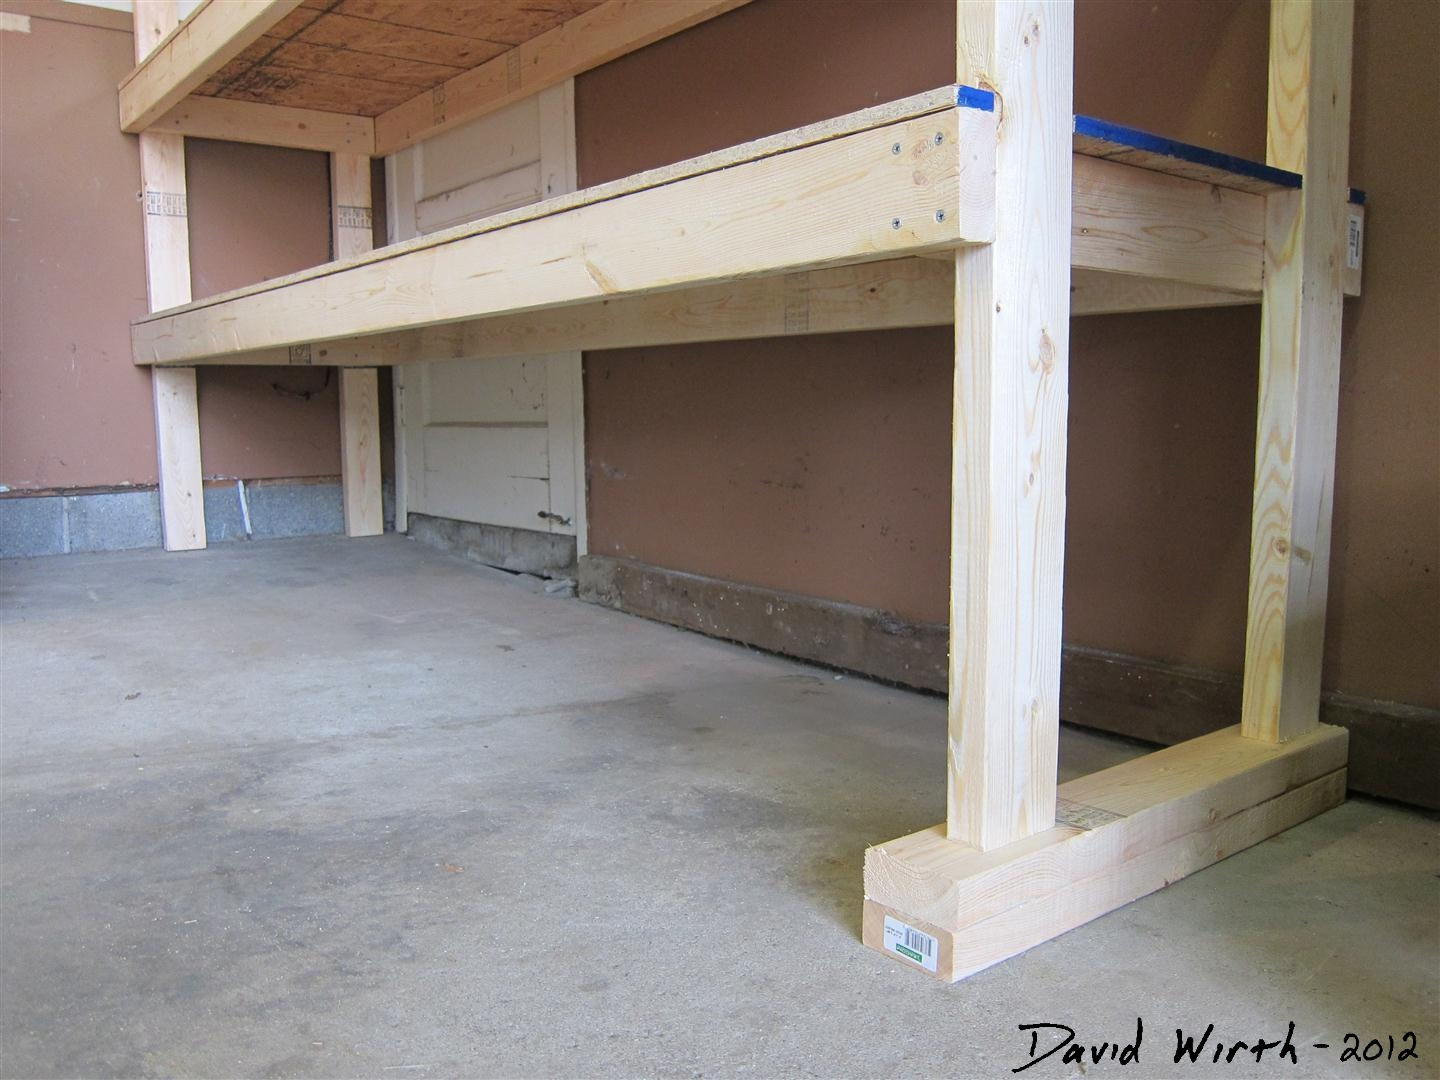 2x4 garage hanging shelving ideas - 2x4 Garage Shelf Plans PDF Woodworking